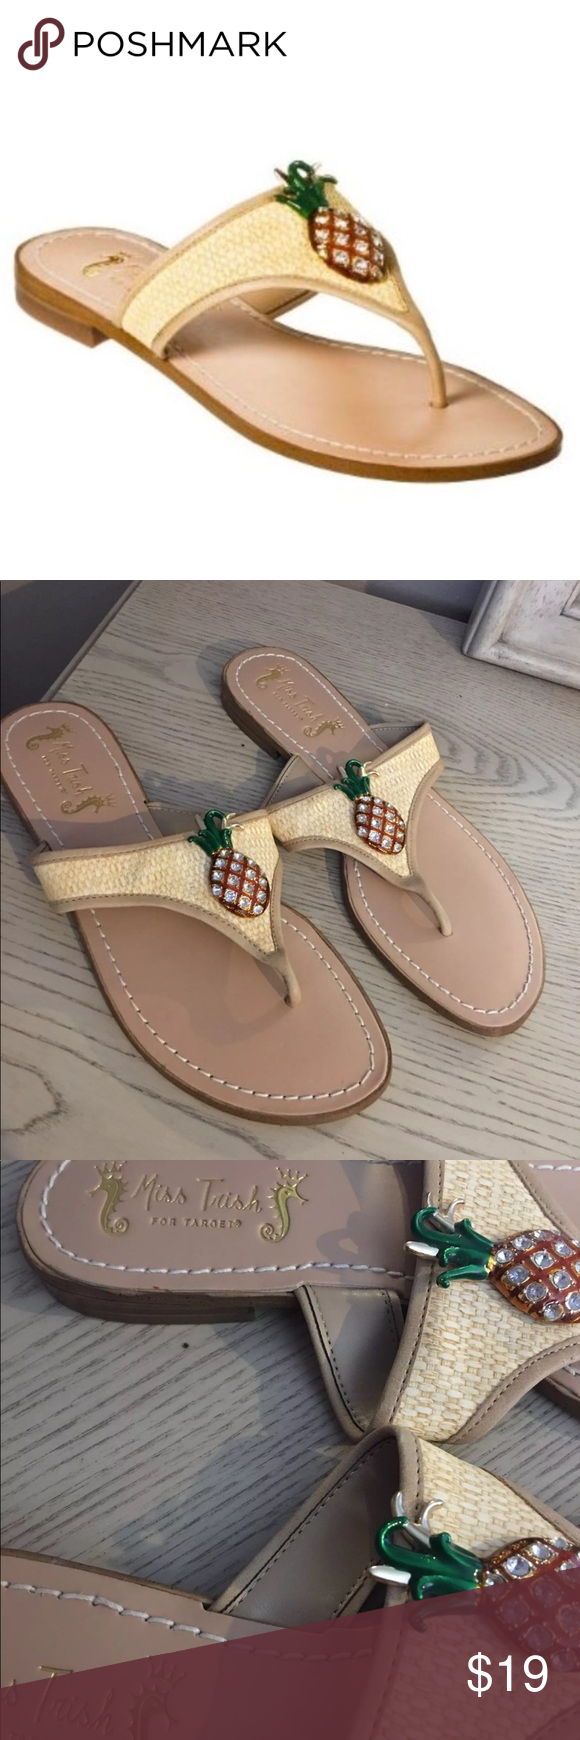 d8f482180 Miss Trish Pineapple Flip Flop Sandals Size 8 Pineapple Rhinestones none  missing worn once Excellent conditions Miss Trish Shoes Sandals